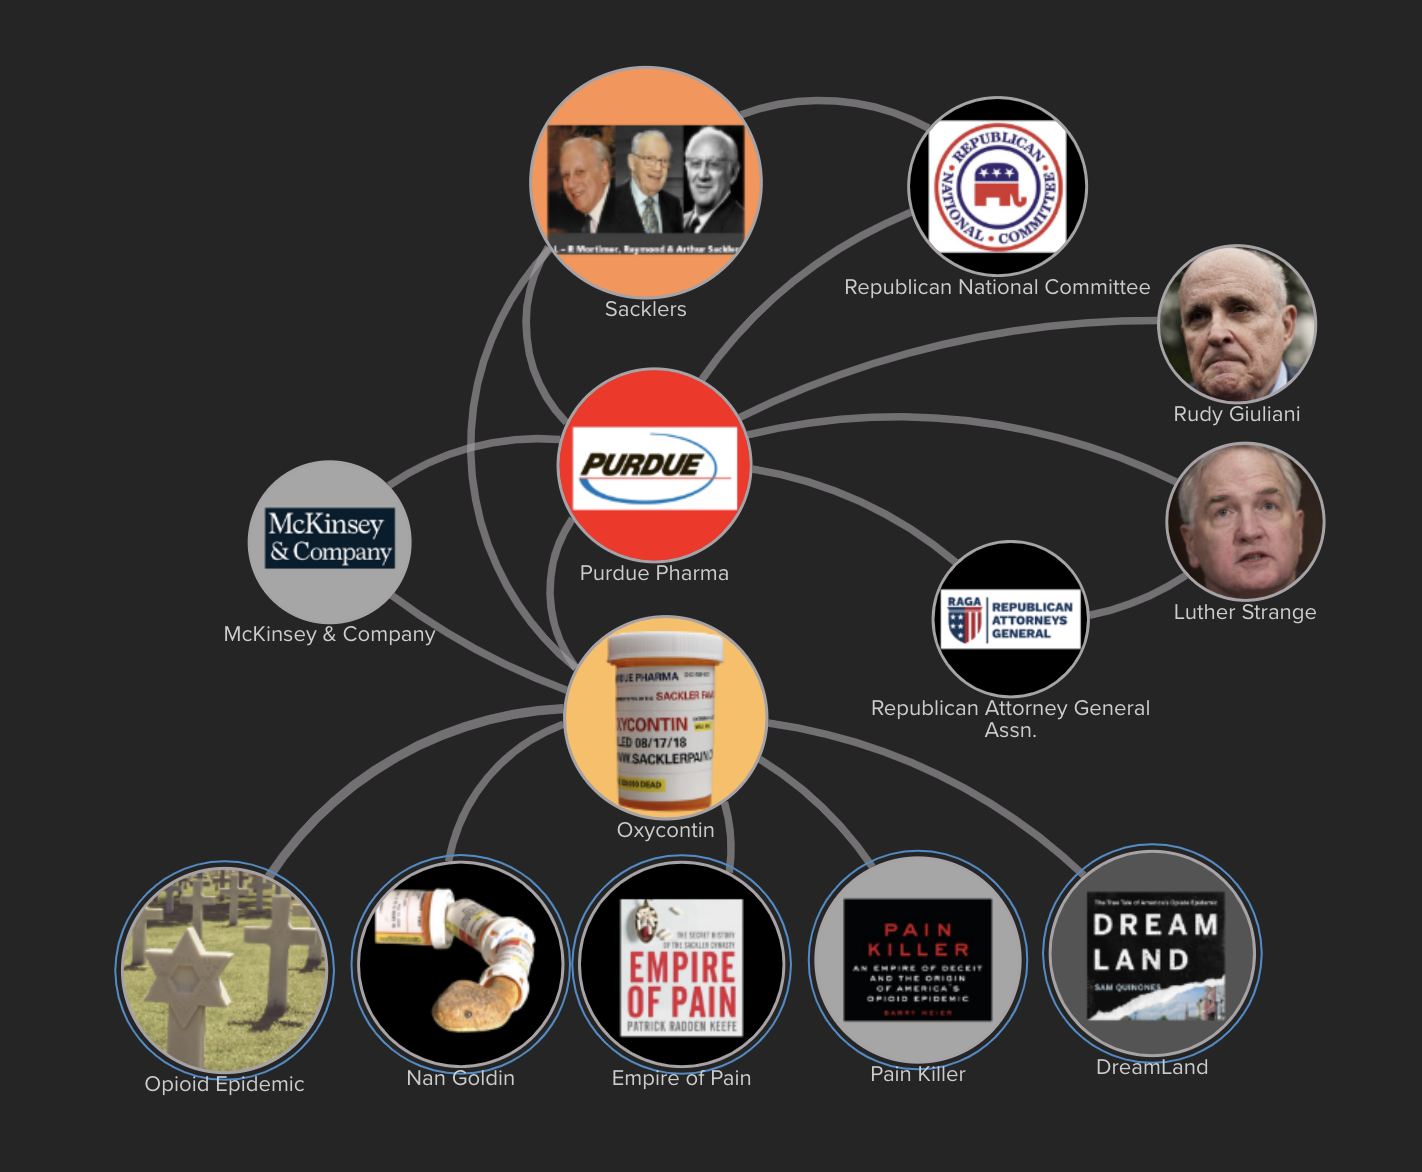 Follow the blood money that bought pricey consultants and political influence. Use relationship maps to explain how super-rich Americans thrive while the poor die.